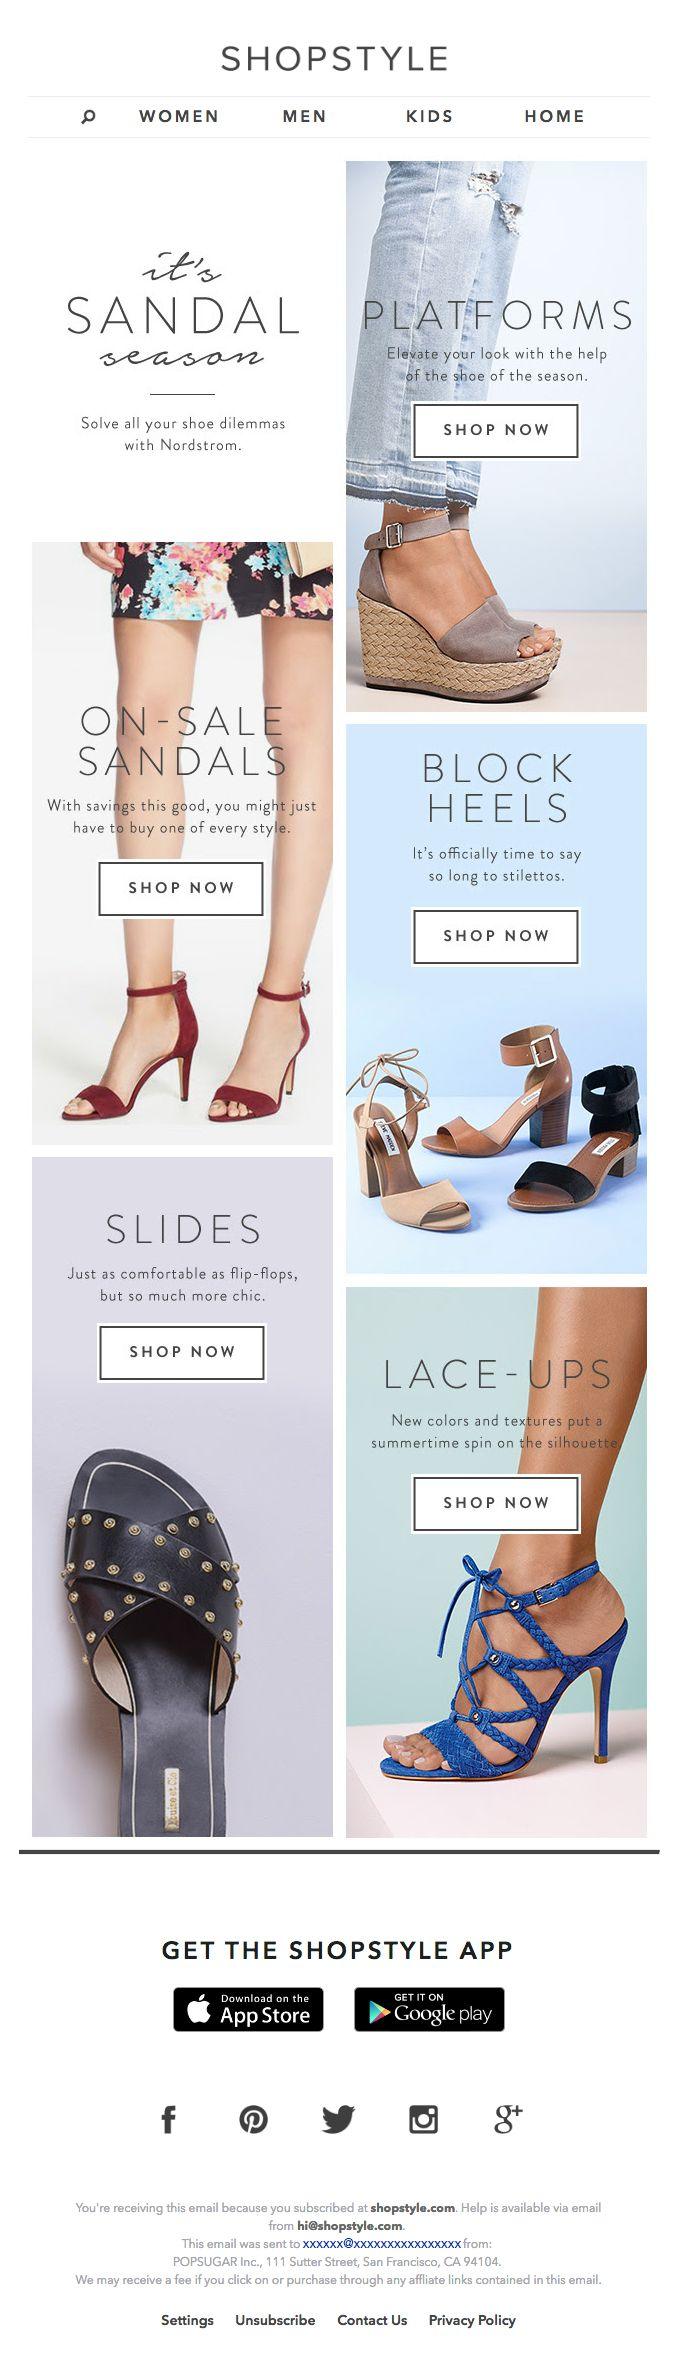 The 5 Need-Now Nordstrom Sandals